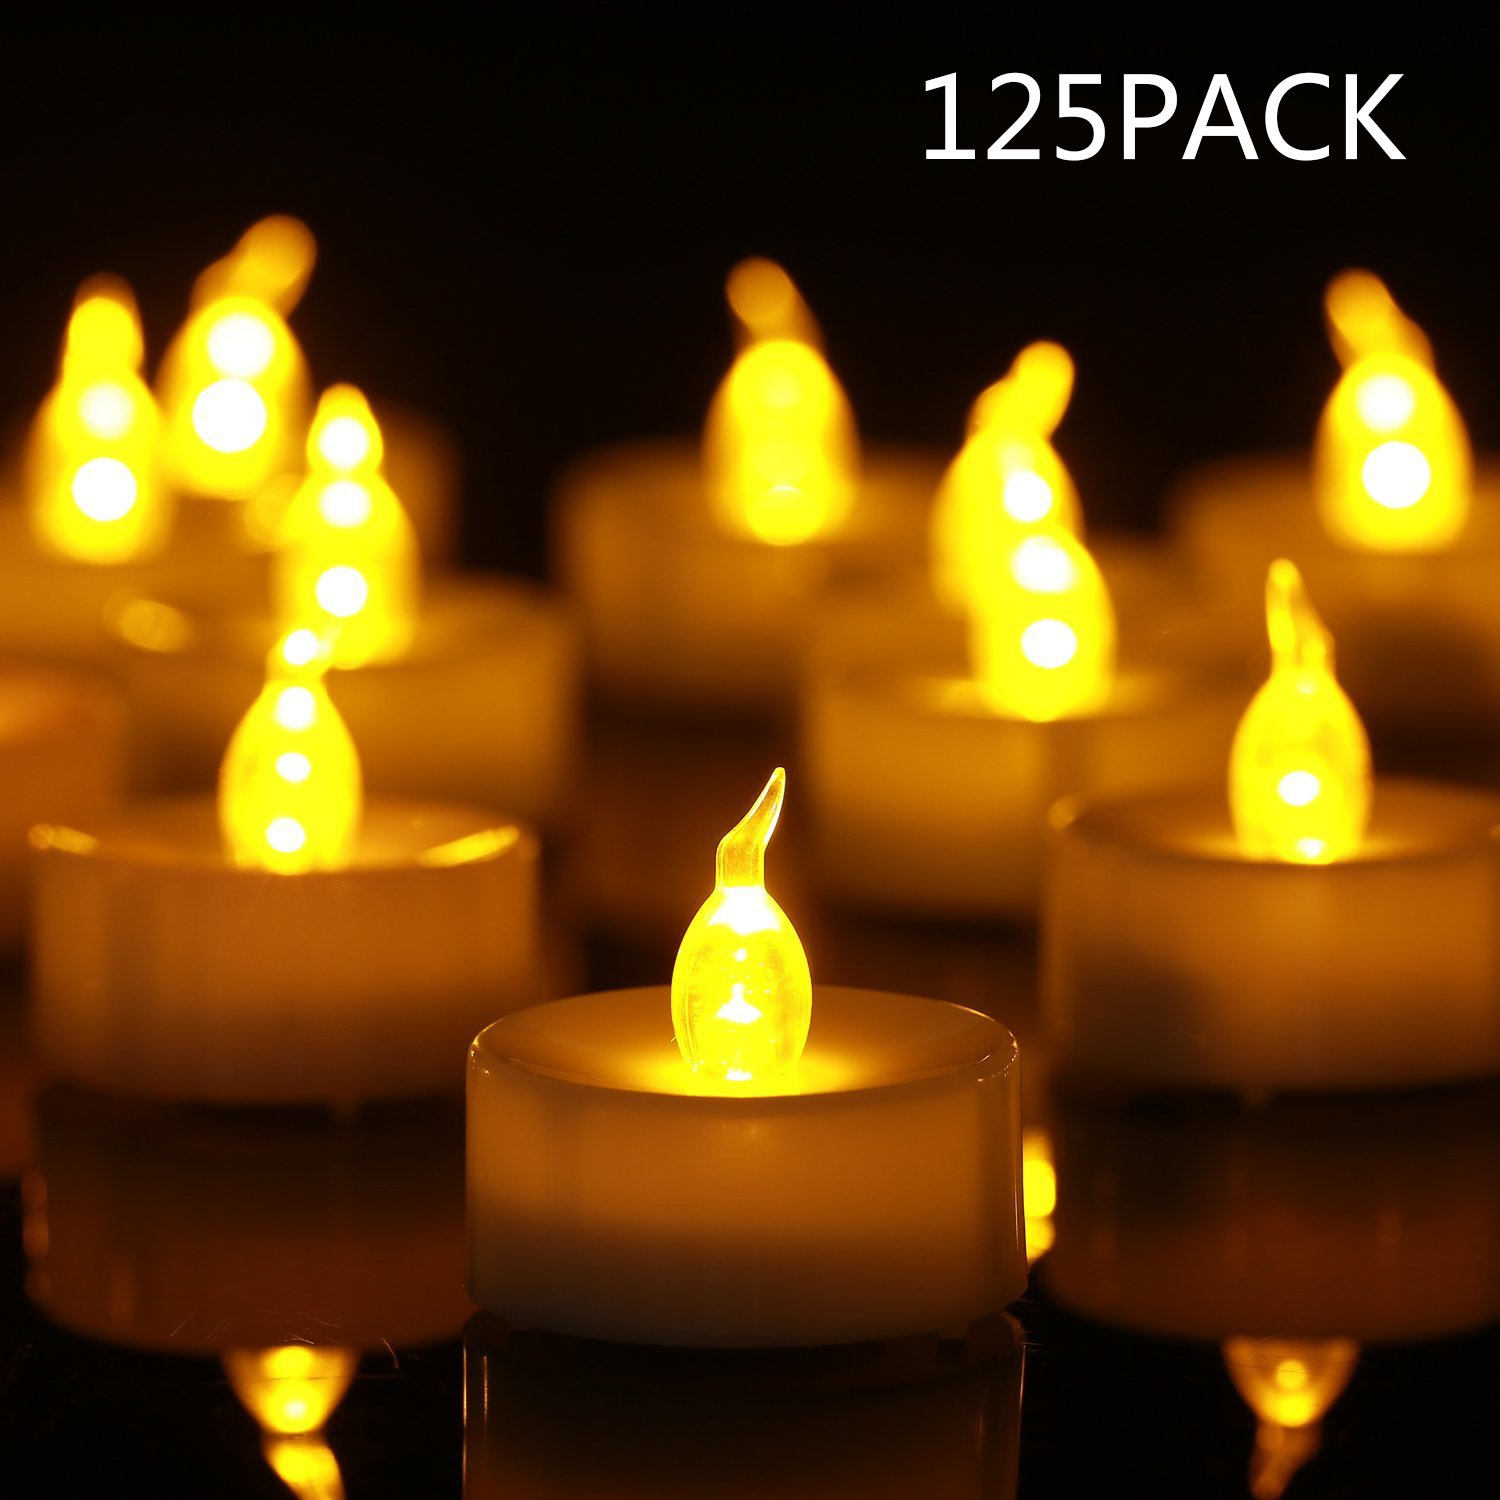 Eloer Tea Lights Flameless LED Tea Lights Candles 125 Pack, Flickering Warm Yellow 100+ Hours Battery-Powered Tealight Candle. Ideal for Party, Wedding, Birthday, Gifts and Home Decoration by Eloer